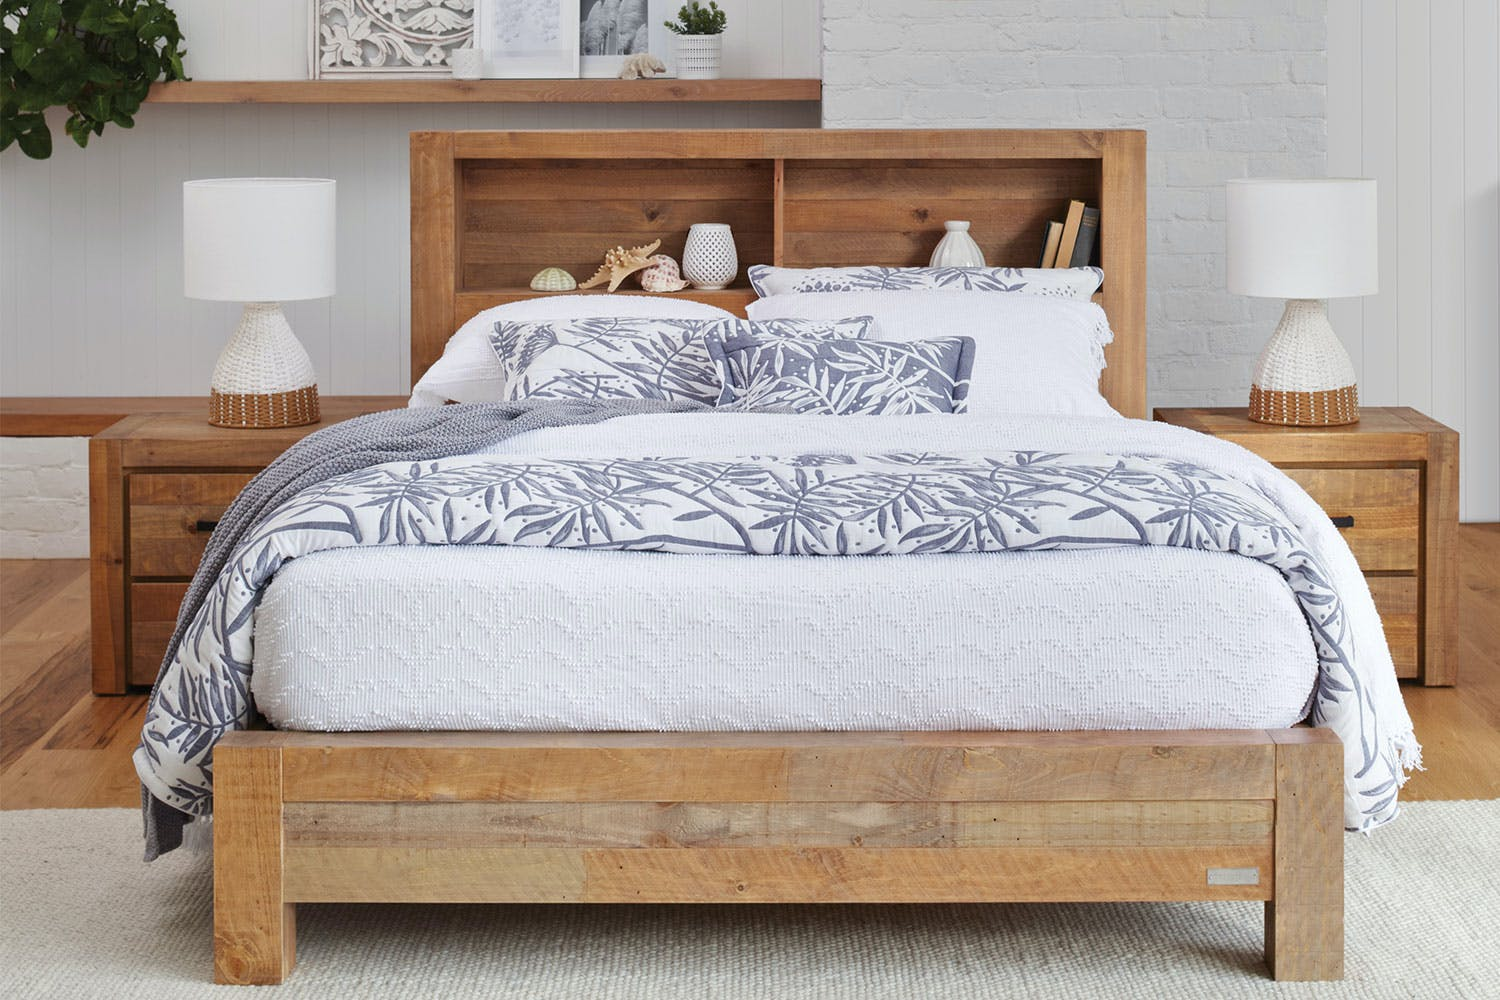 Coolmore-Bed-Frame_kqsr-ot